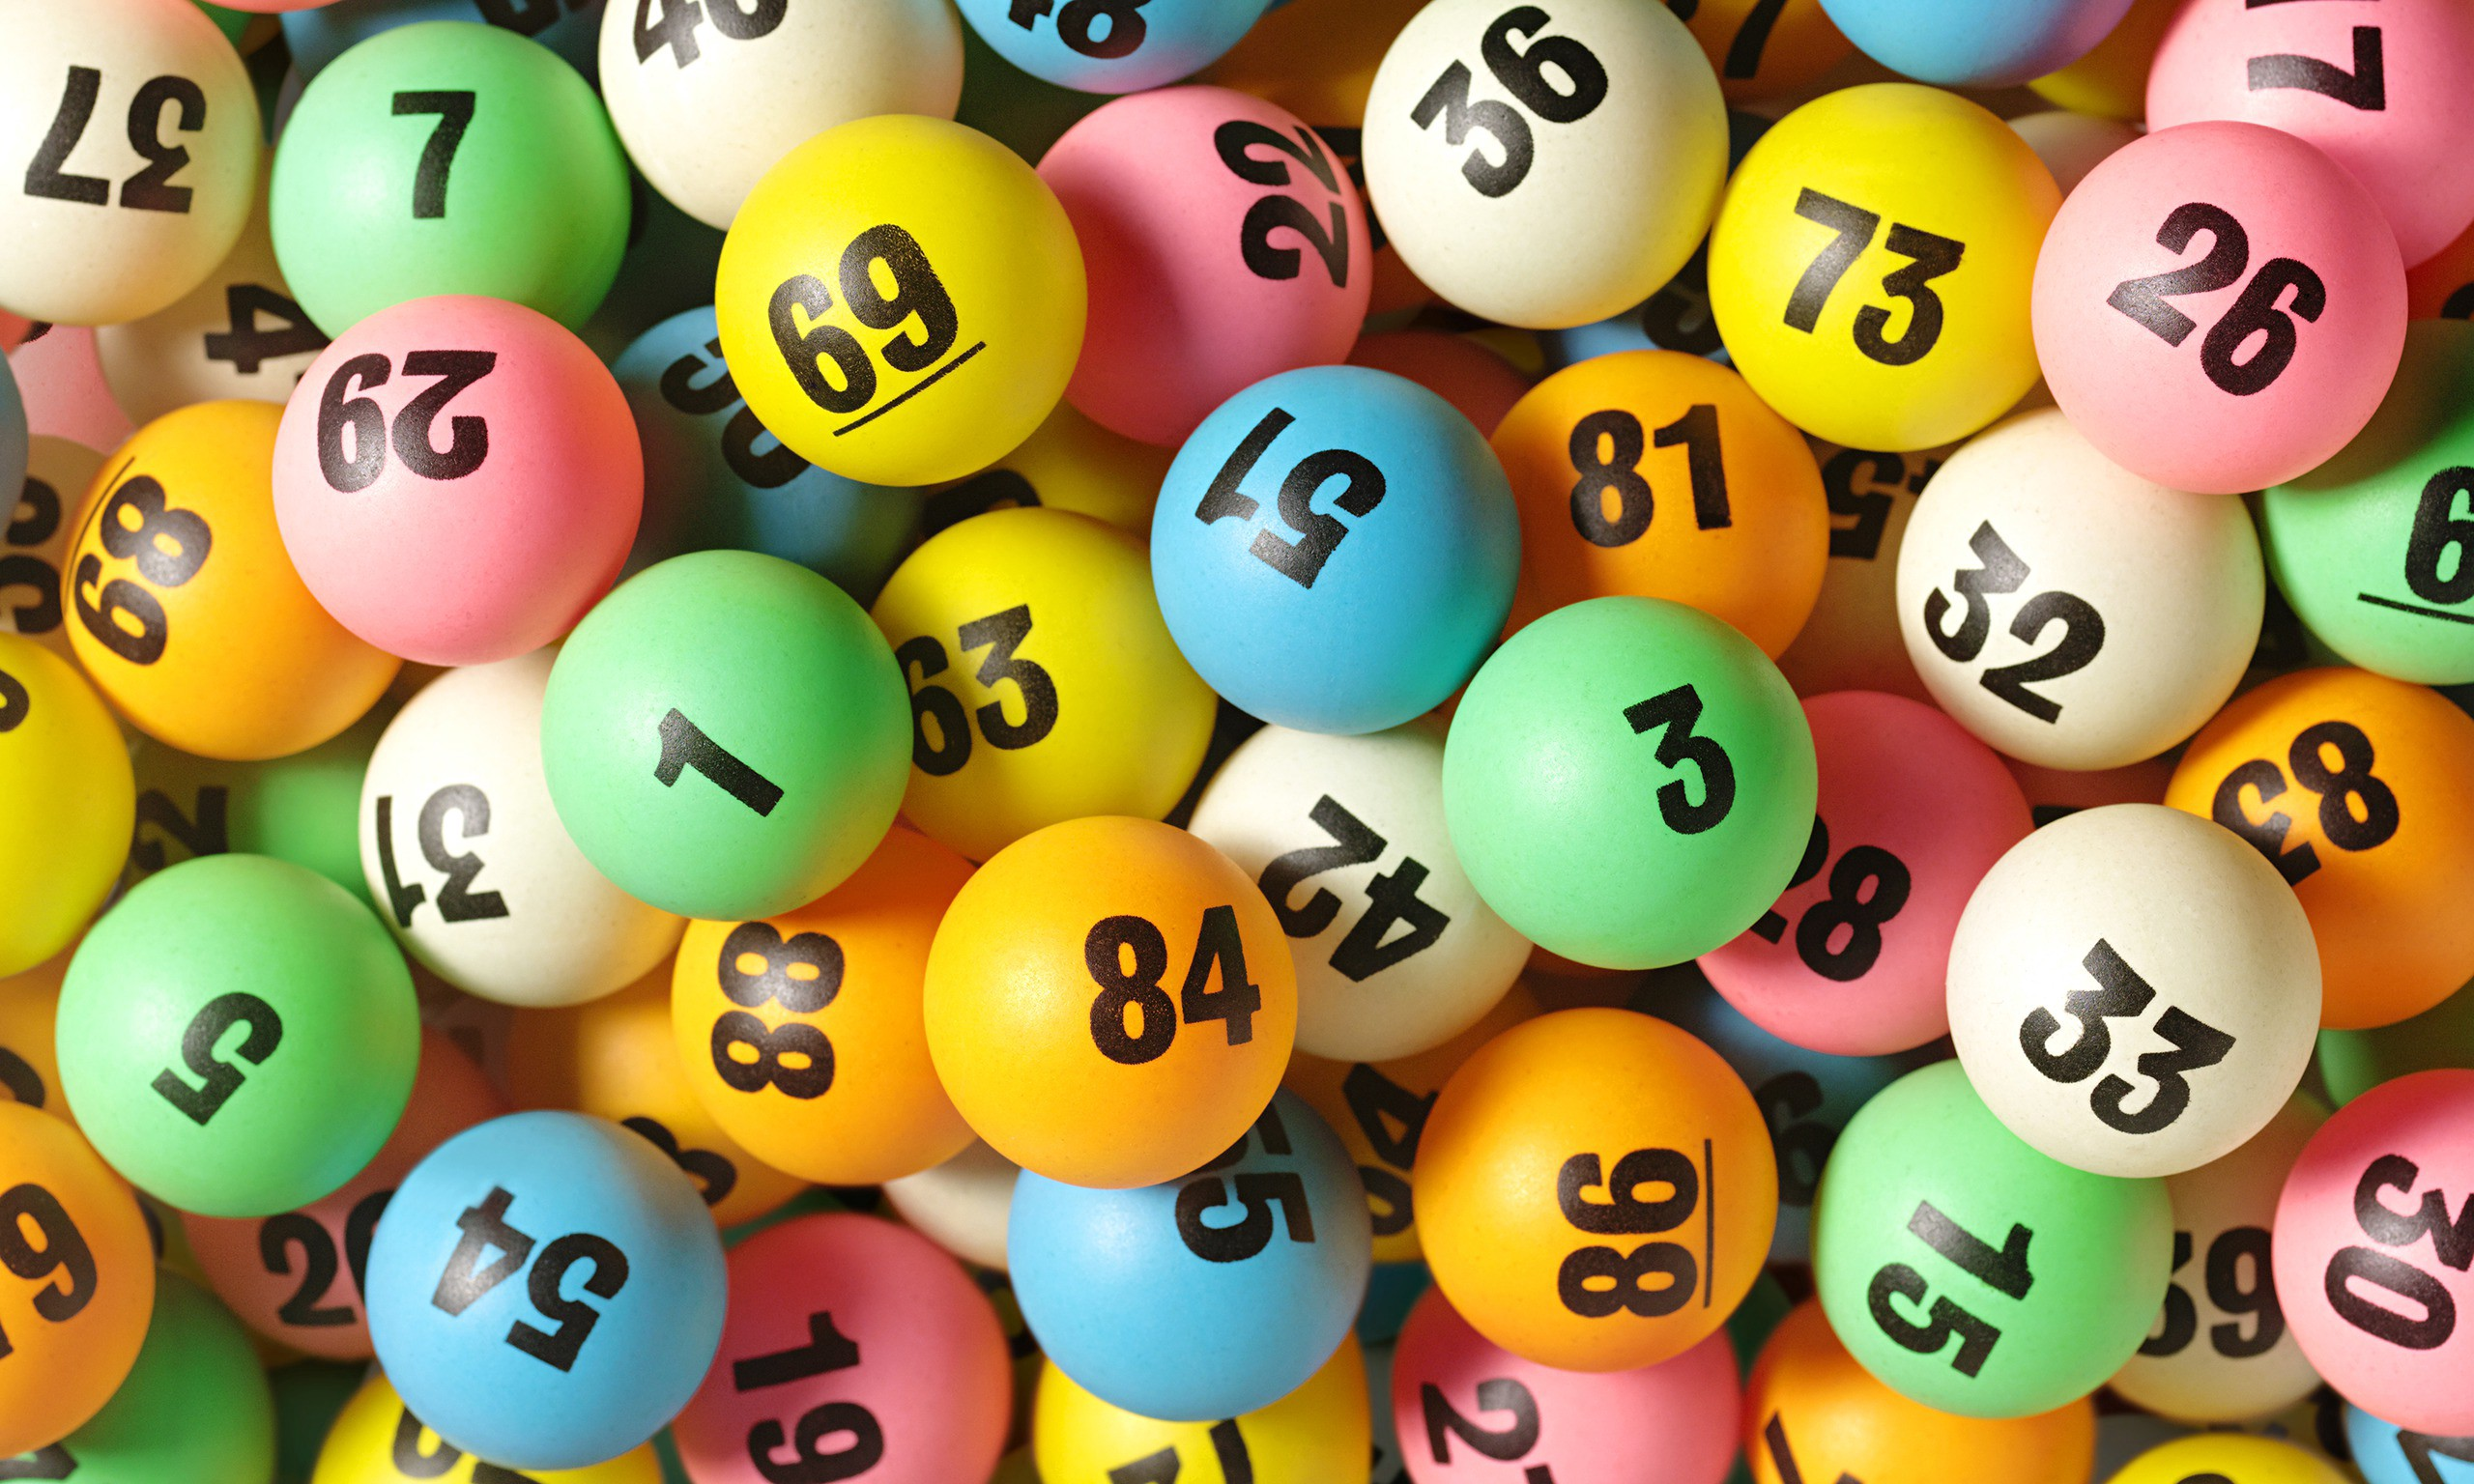 Why Betting on the Lottery is a Pretty Bad Idea (if you actually wish to  win) | by Ewe Zi Yi | Towards Data Science